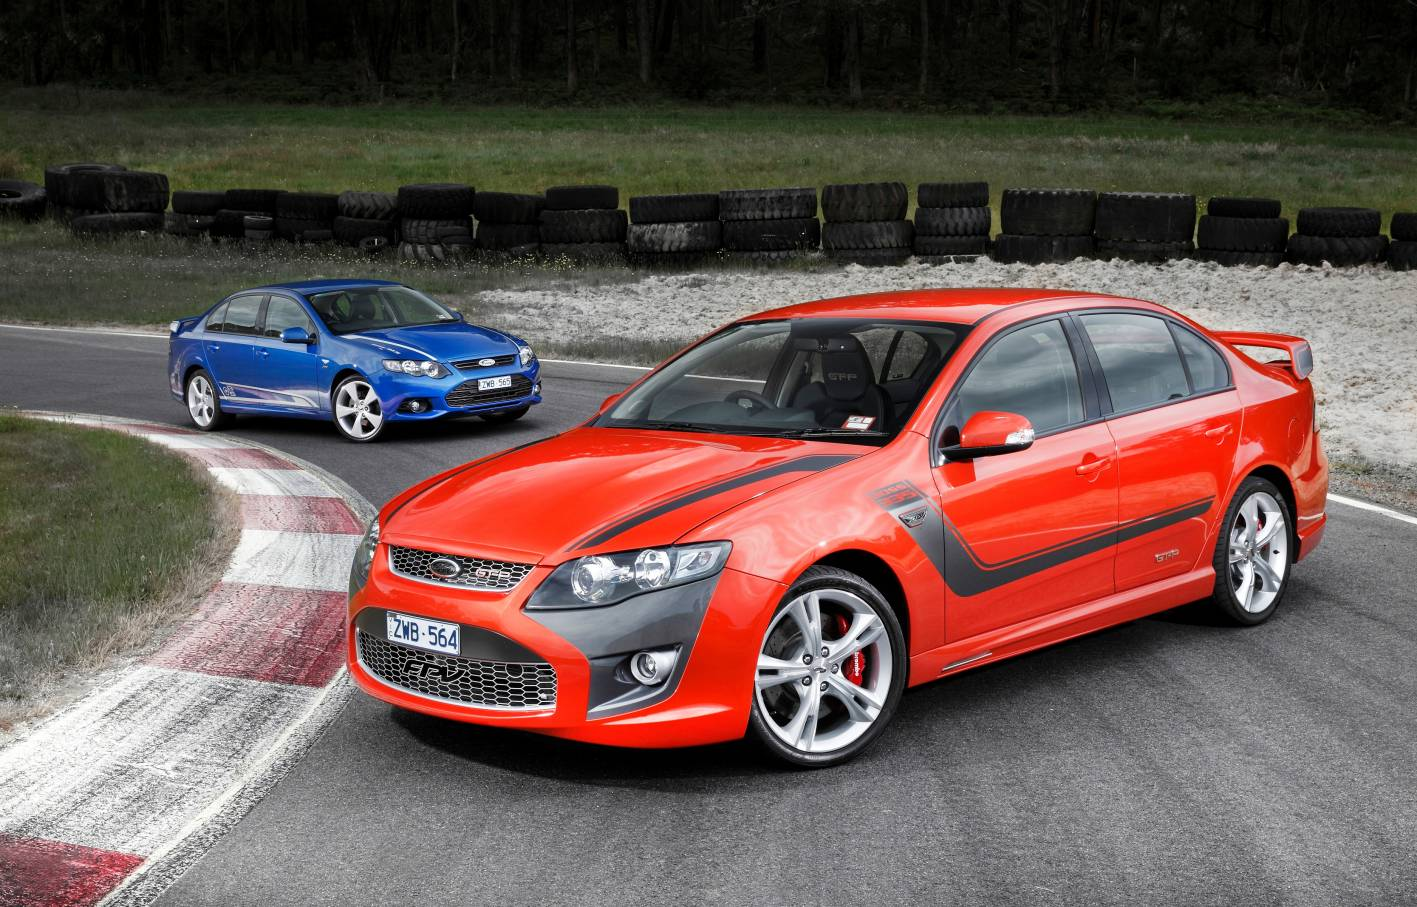 New Range Rover >> News - Ford Falcon XR8 To Return Next Year